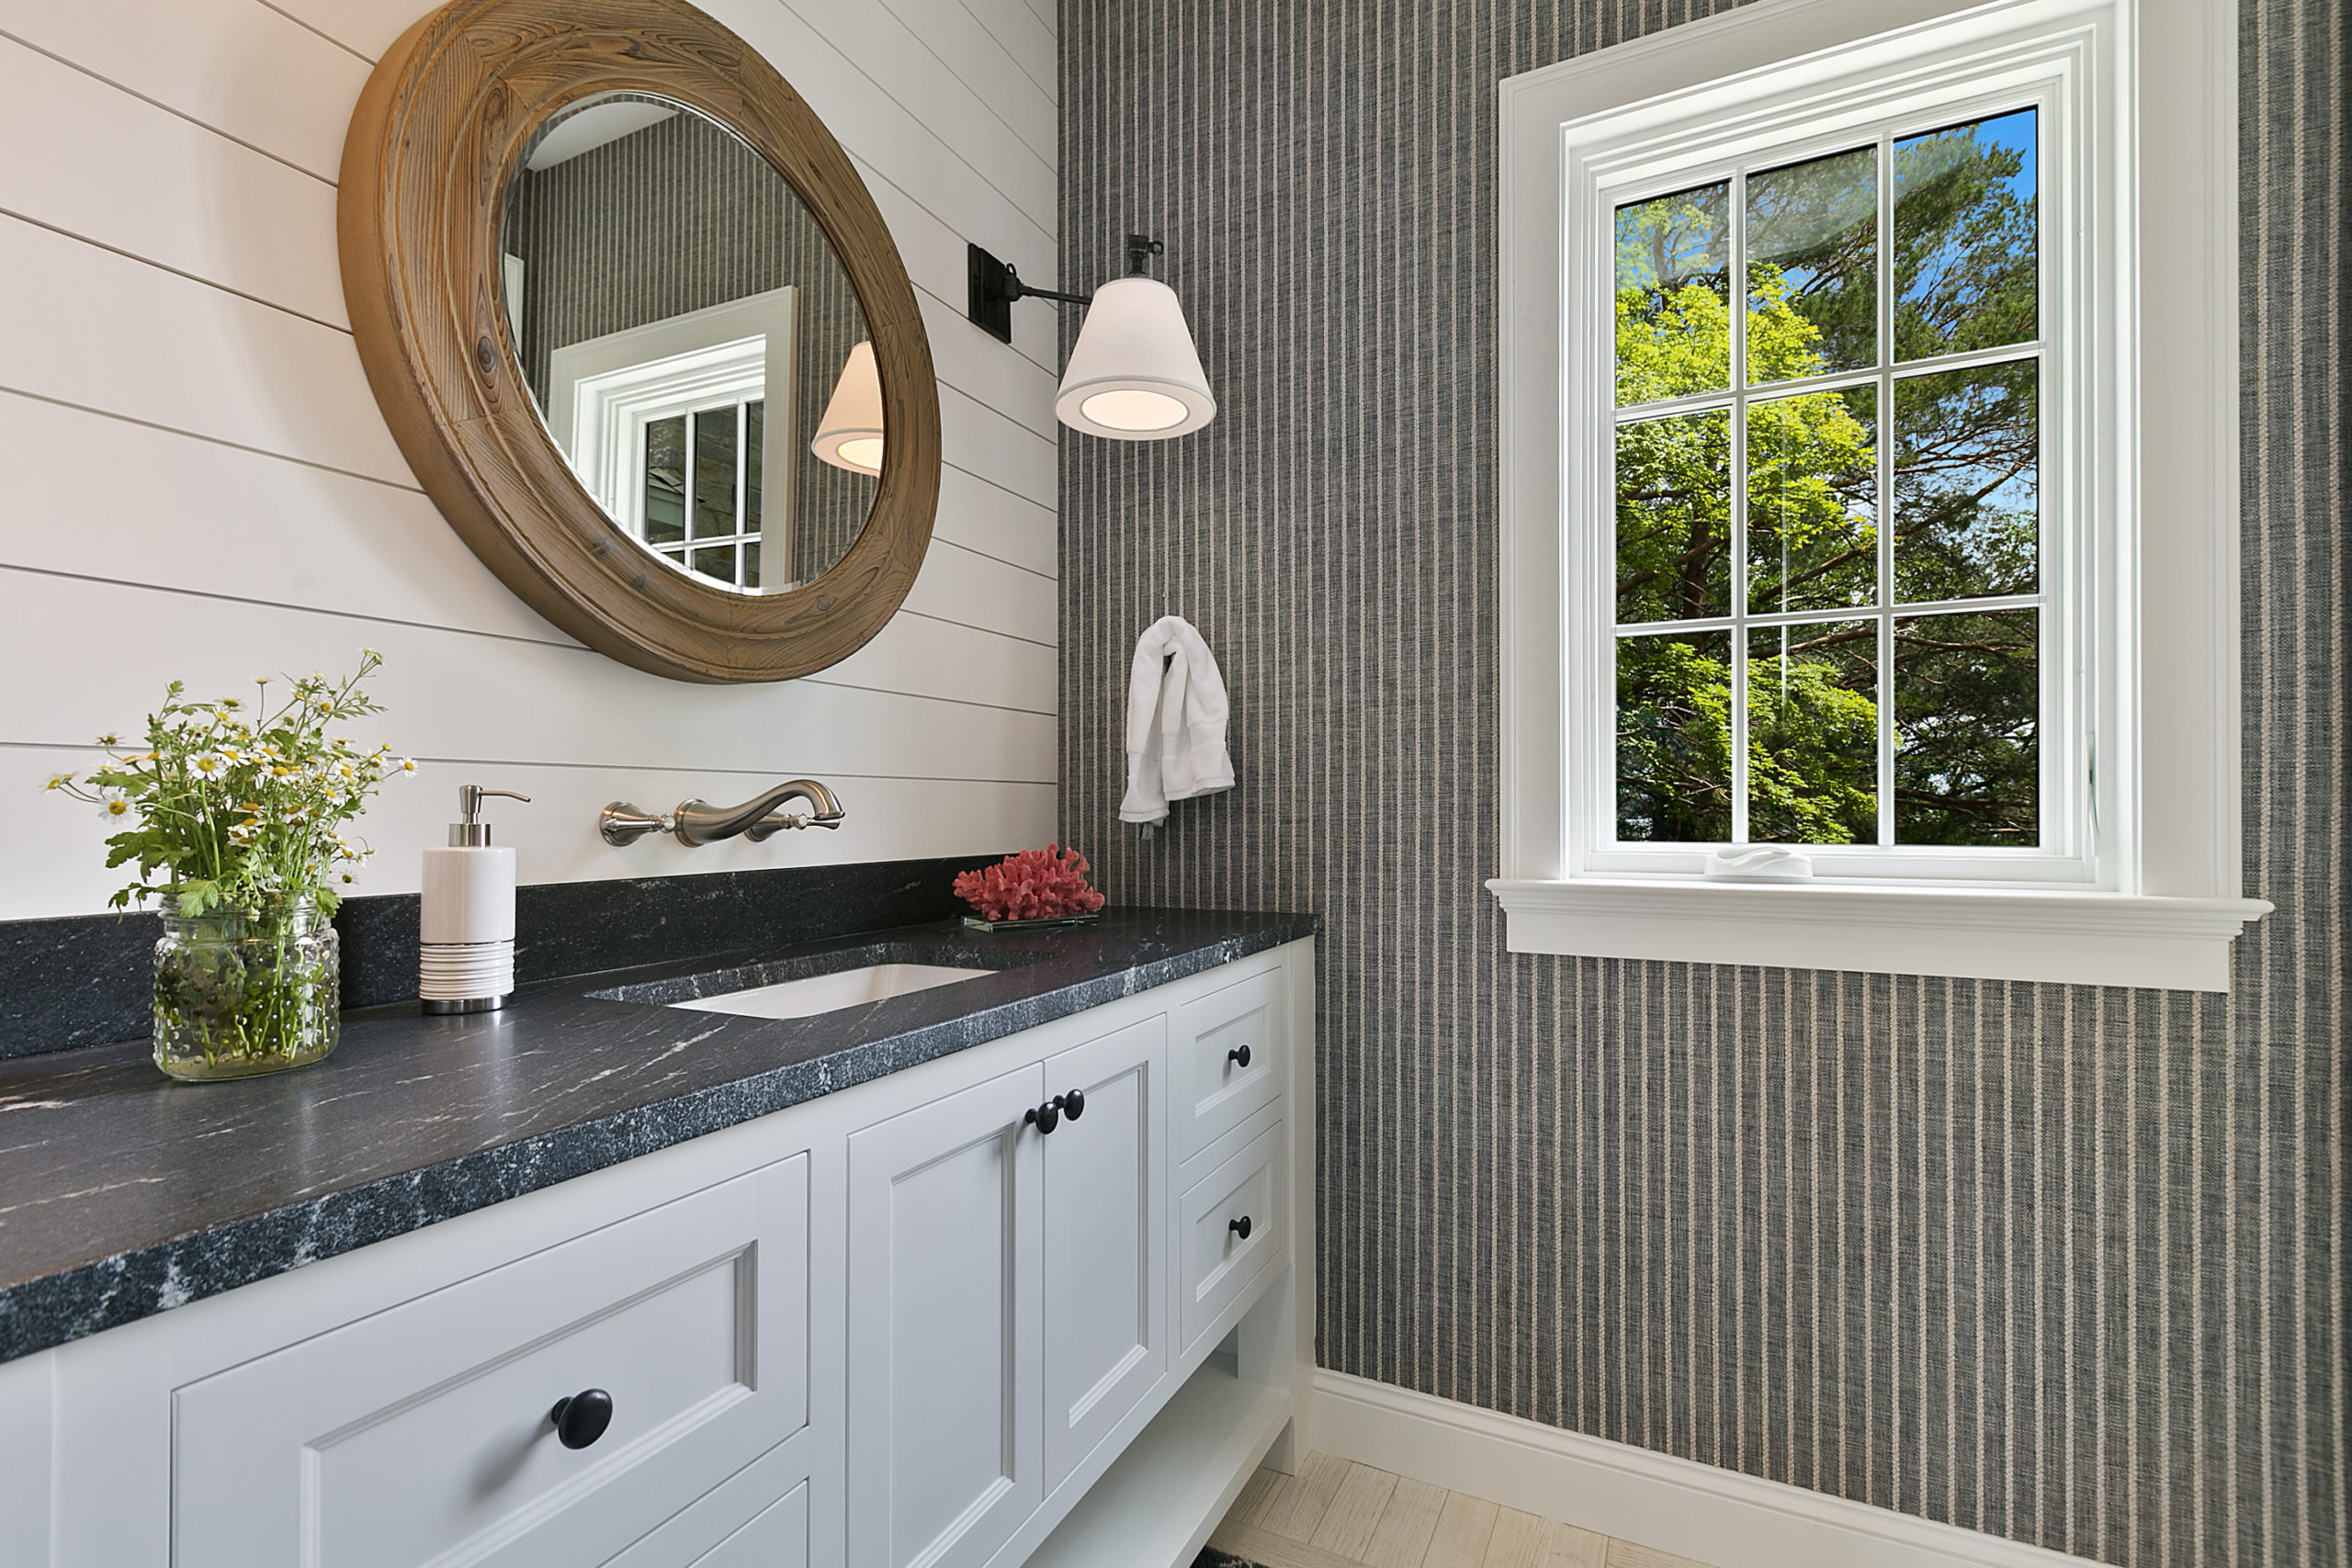 Round mirror and sconce lights on a shiplap wall in bathroom